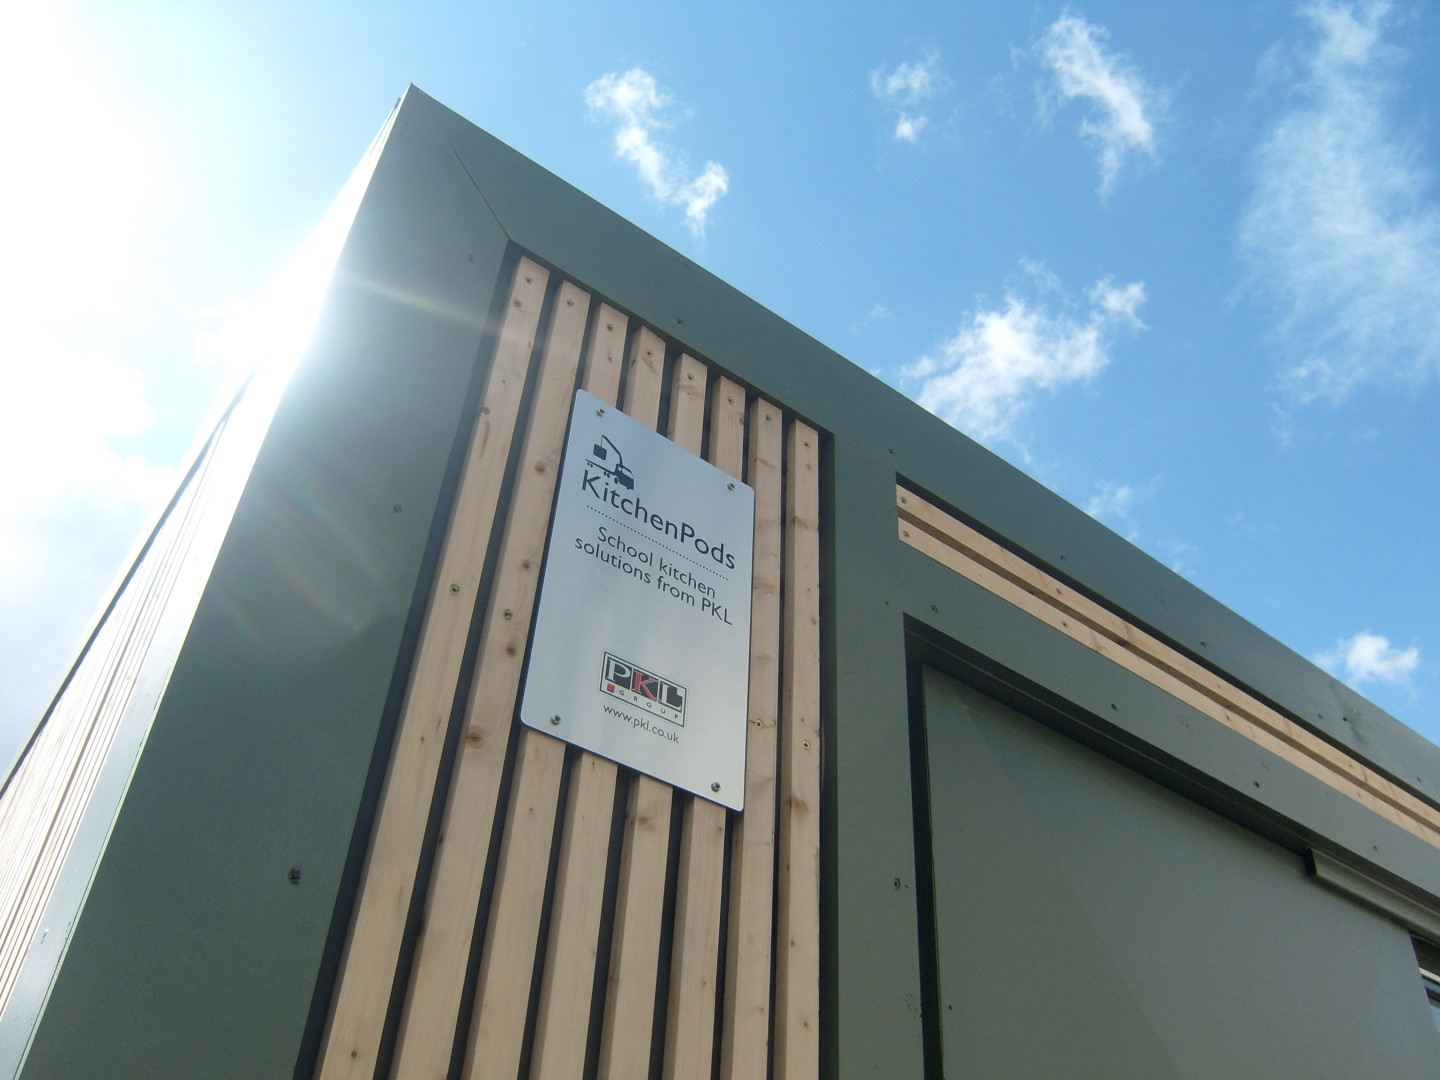 Modular KitchenPods for Northamptonshire County Council